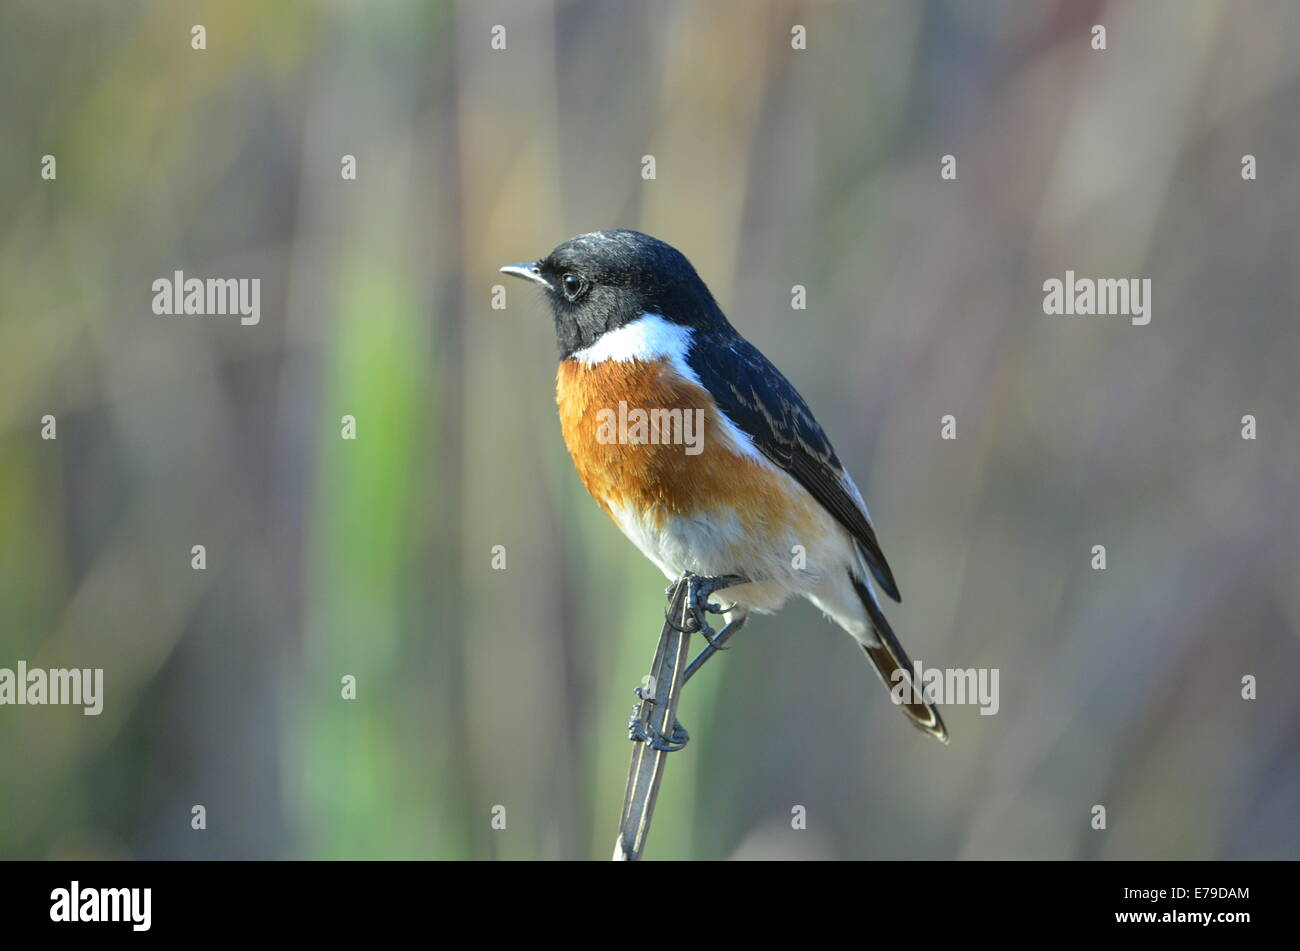 Stone chat bird perching on reed in Kruger Park, South Africa. - Stock Image